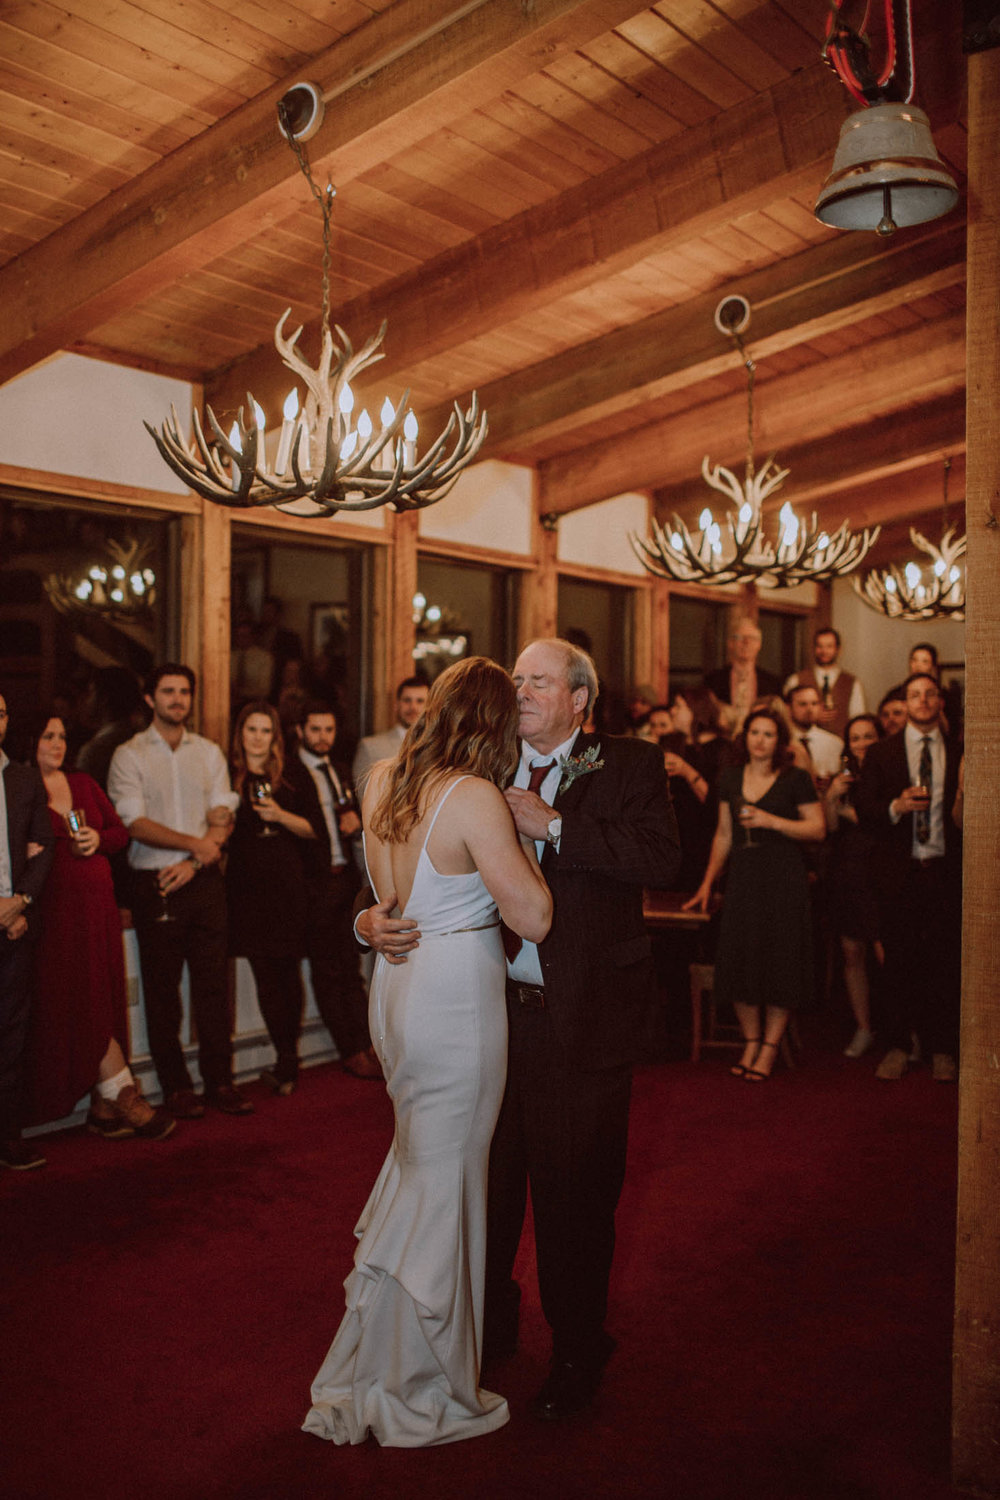 roundhouse_sunValley_wedding-52.jpg